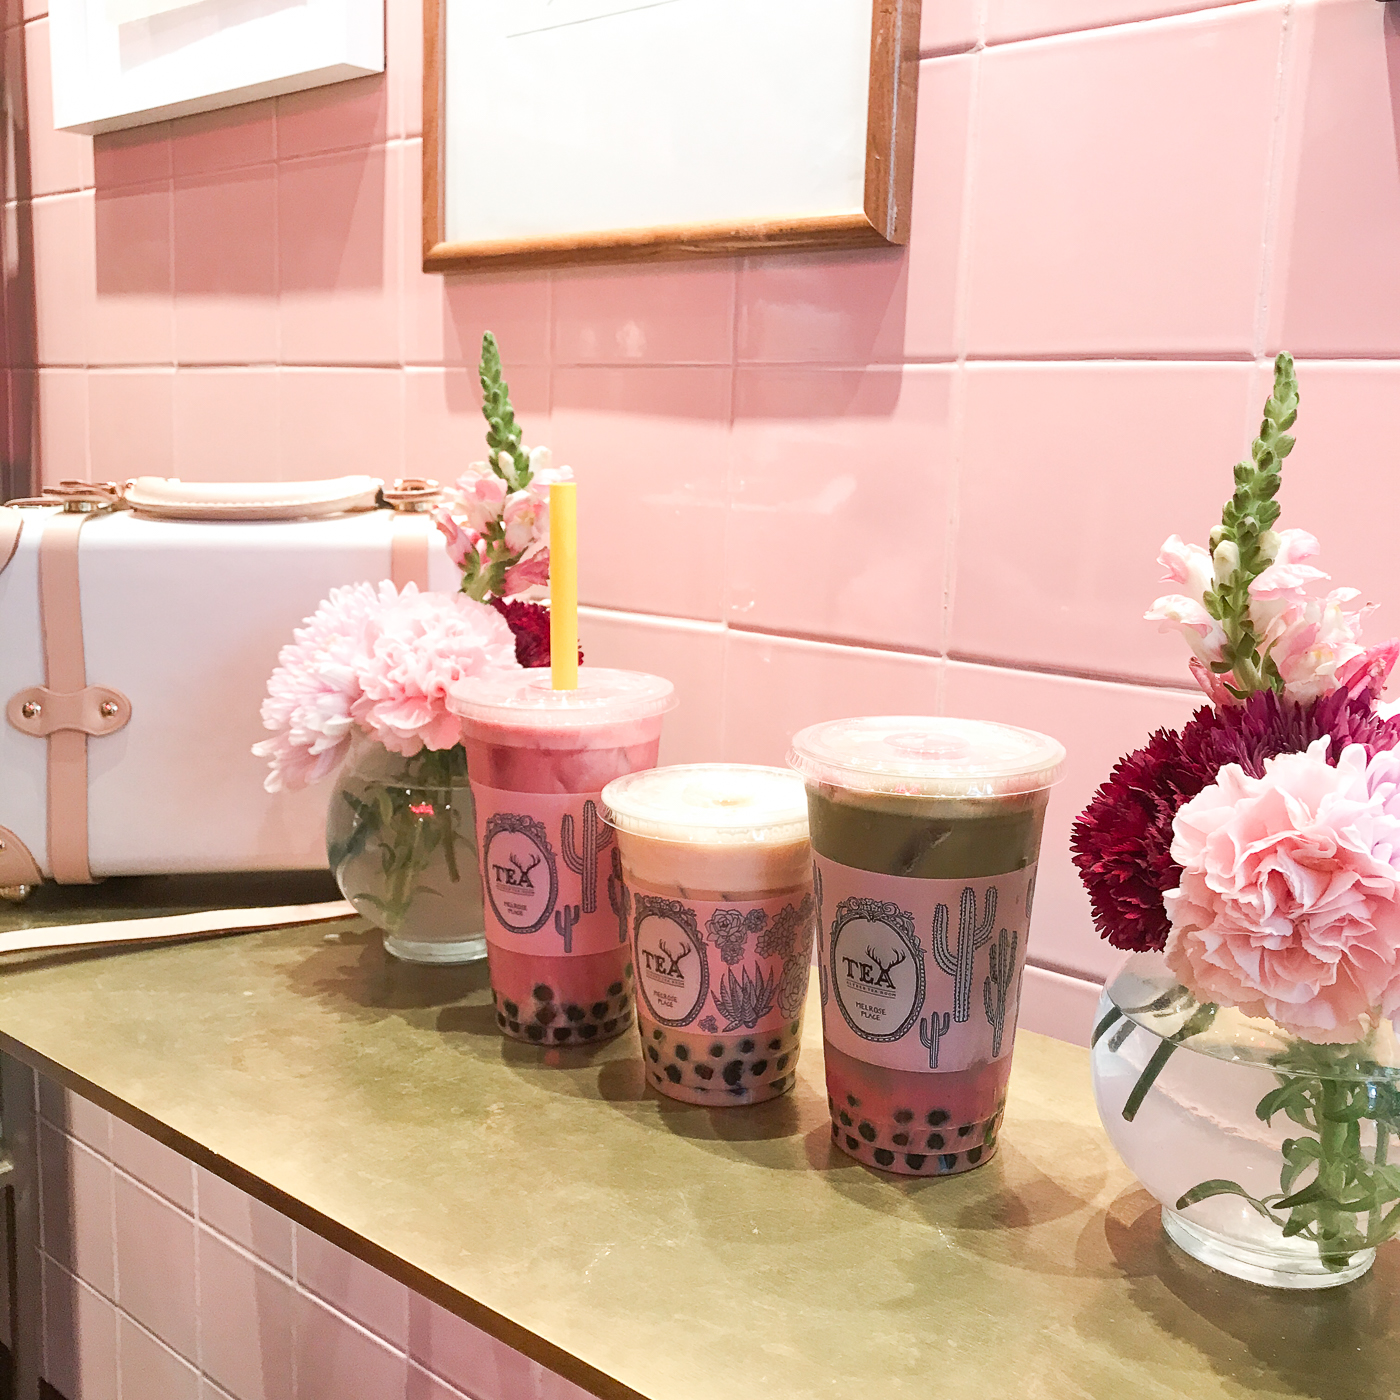 Alfred Tea Room 1 - LA Food Guide | The Chic Diary